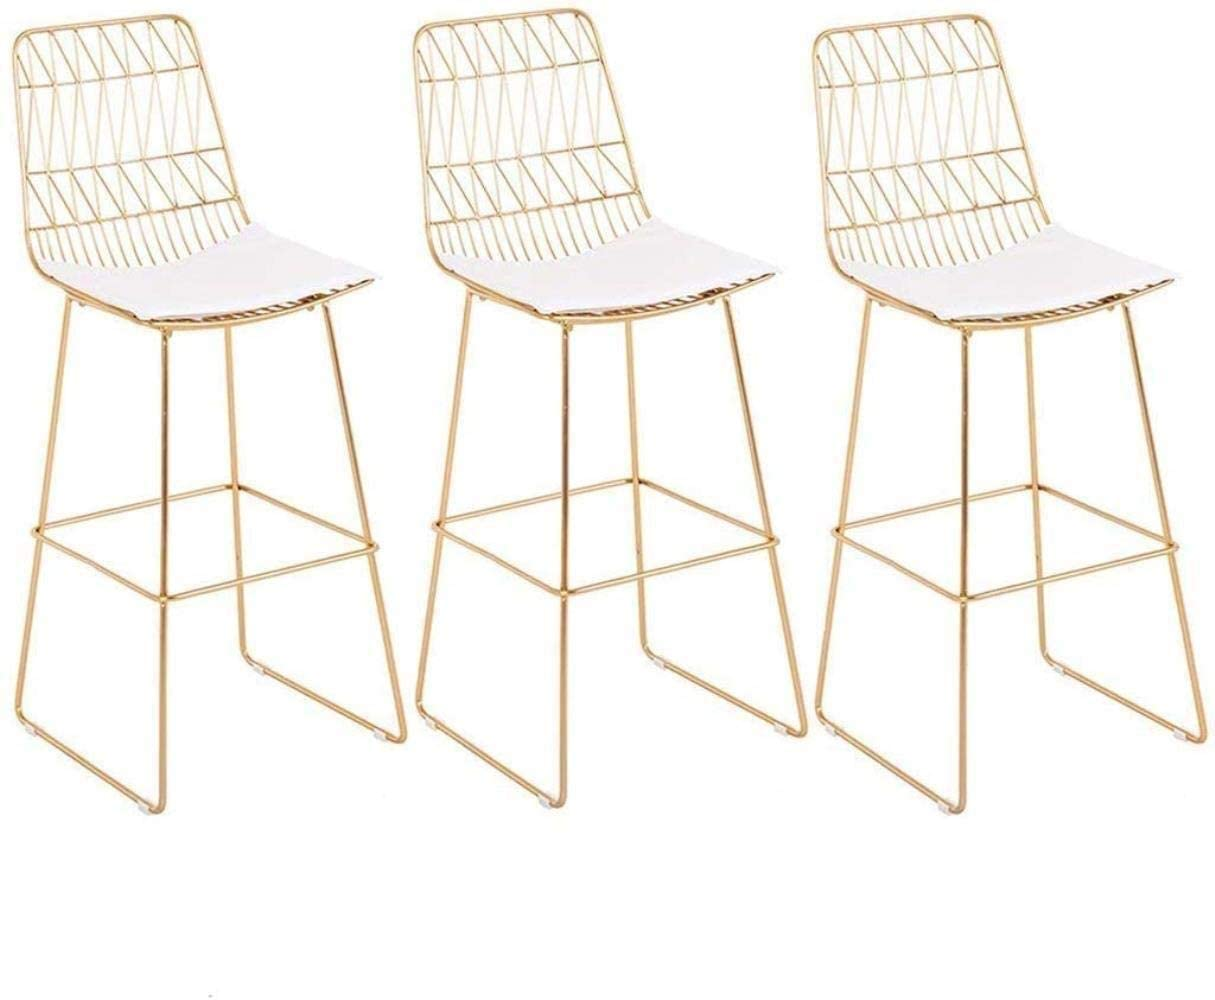 PLLP Bars, Cafes, Restaurant Chairs,Chair Office Chair Desk Chairs On-Trend Kitchen and Breakfast Barstools Set of 3 Pcs Iron Art Dining Chair Makeup Stool Bistro Kitchen Counter Max Load 180Kg